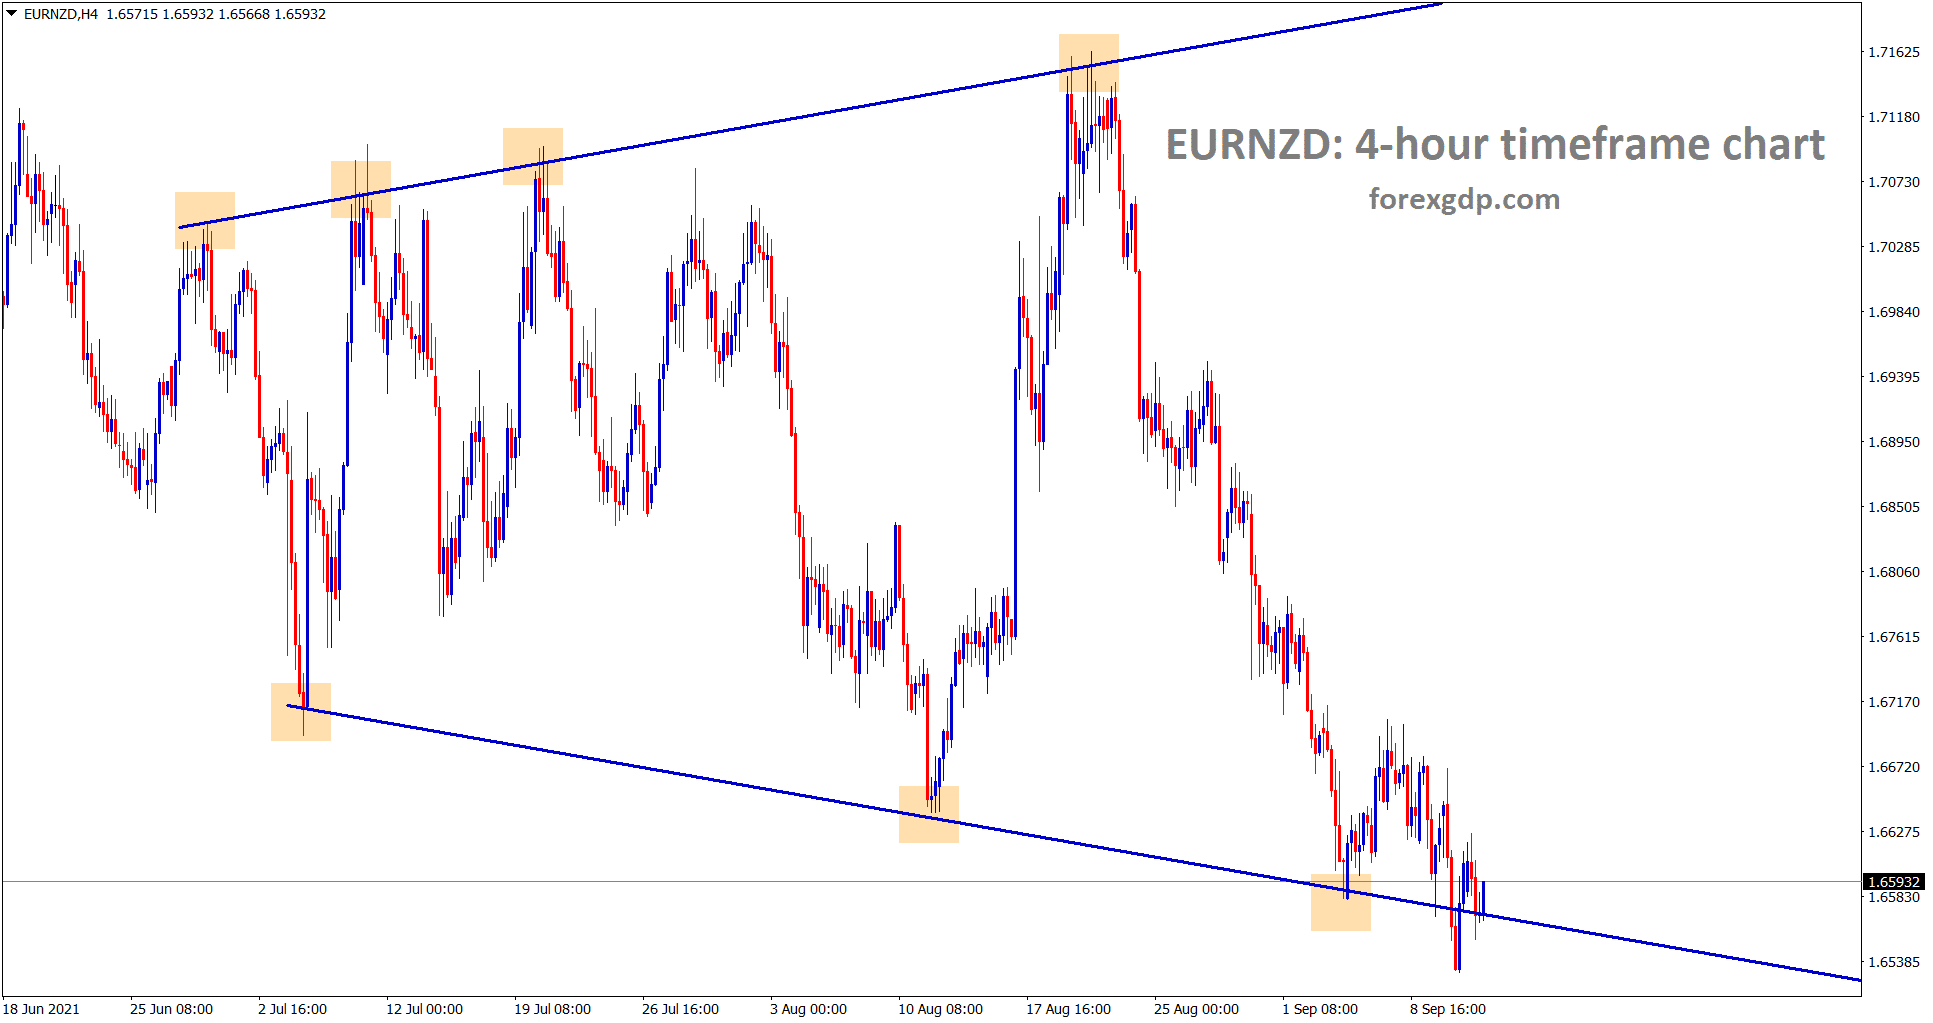 EURNZD has formed a Expanding Triangle pattern in the 4 hour timeframe chart